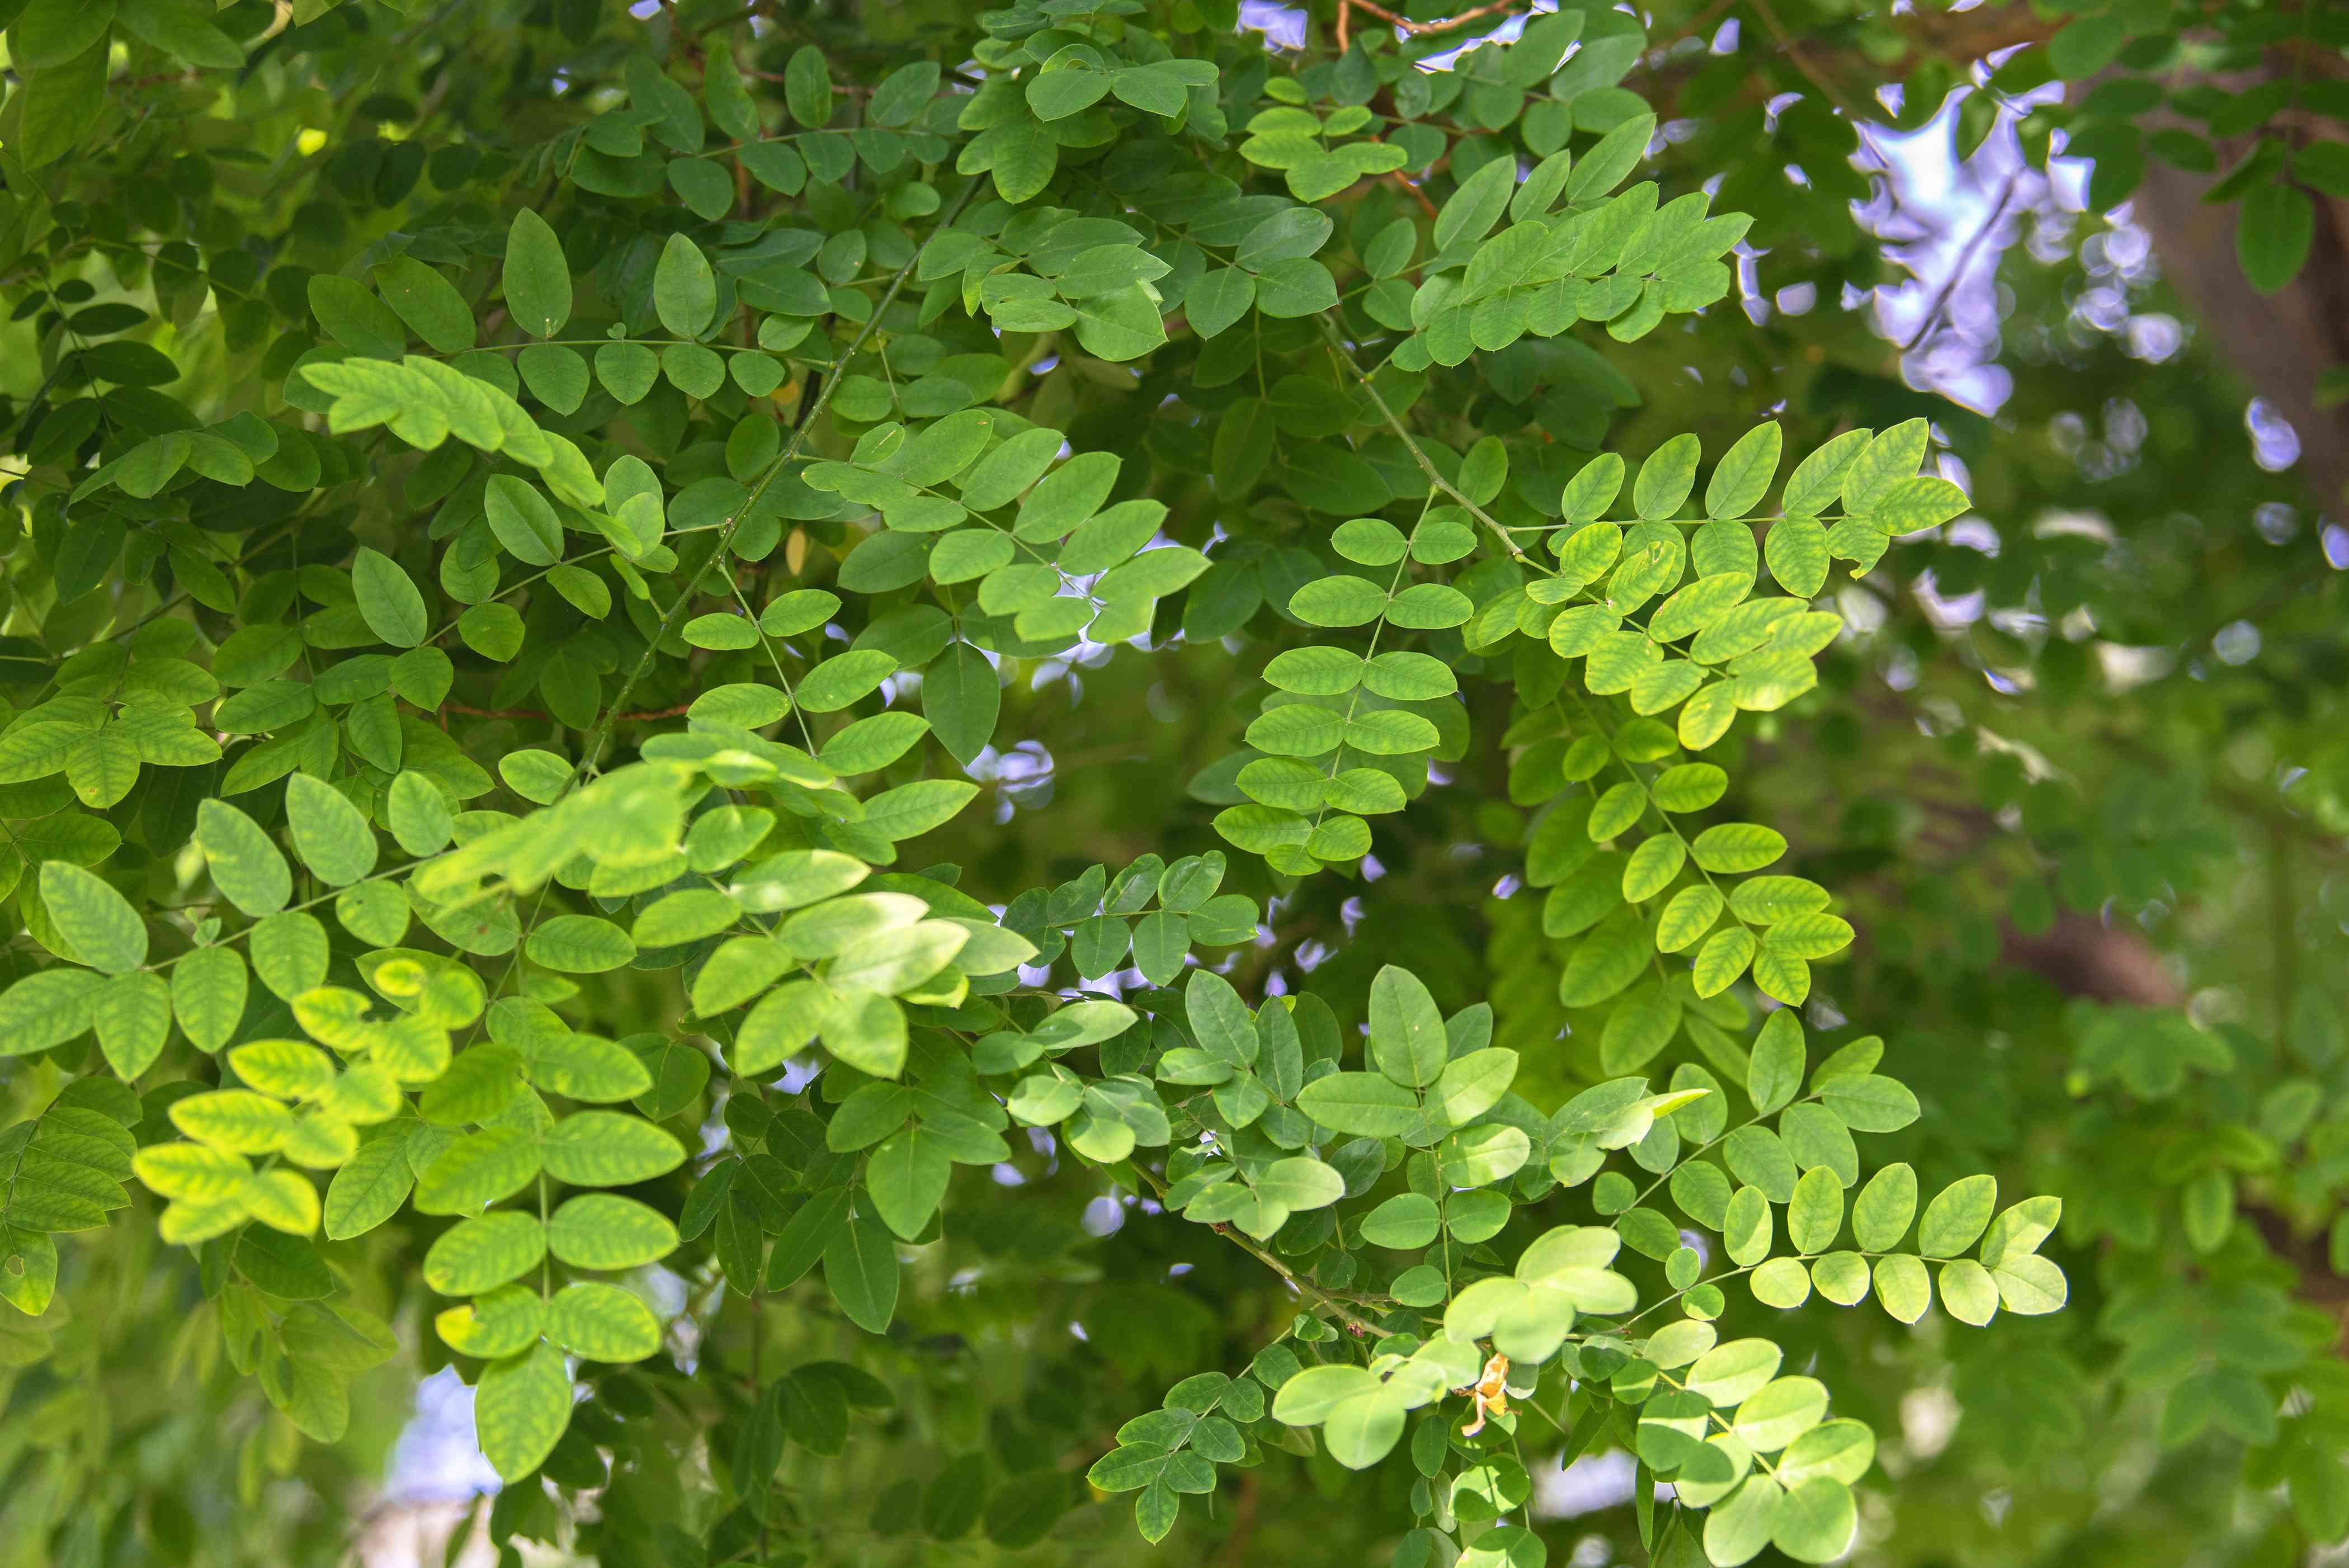 Japanese pagoda tree branches with small oval bright green leaves